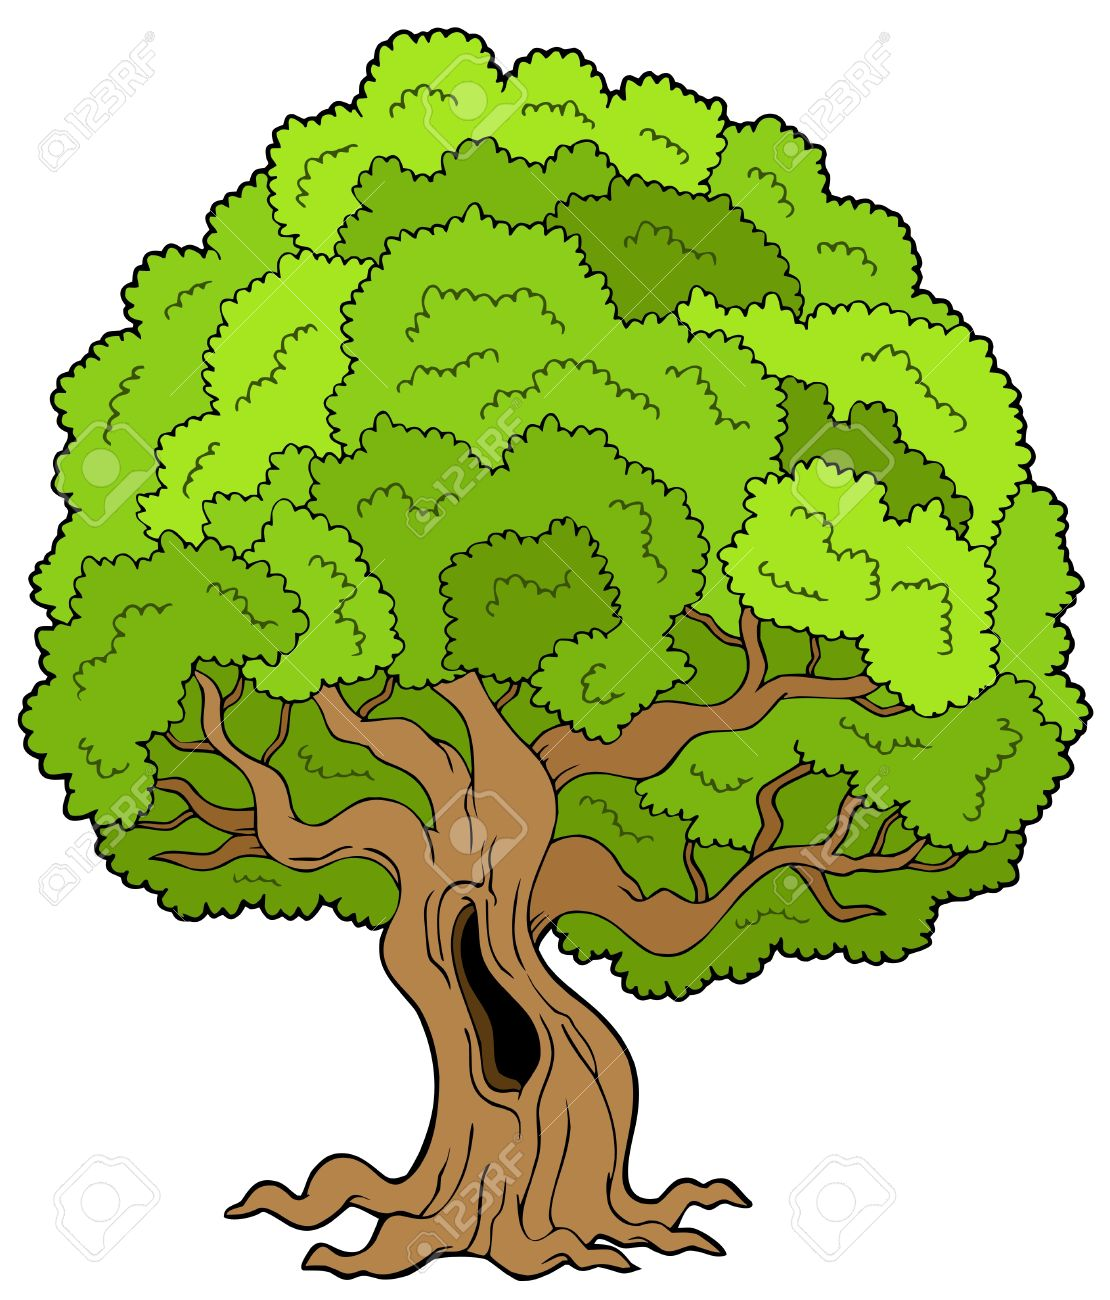 Old tree clipart.